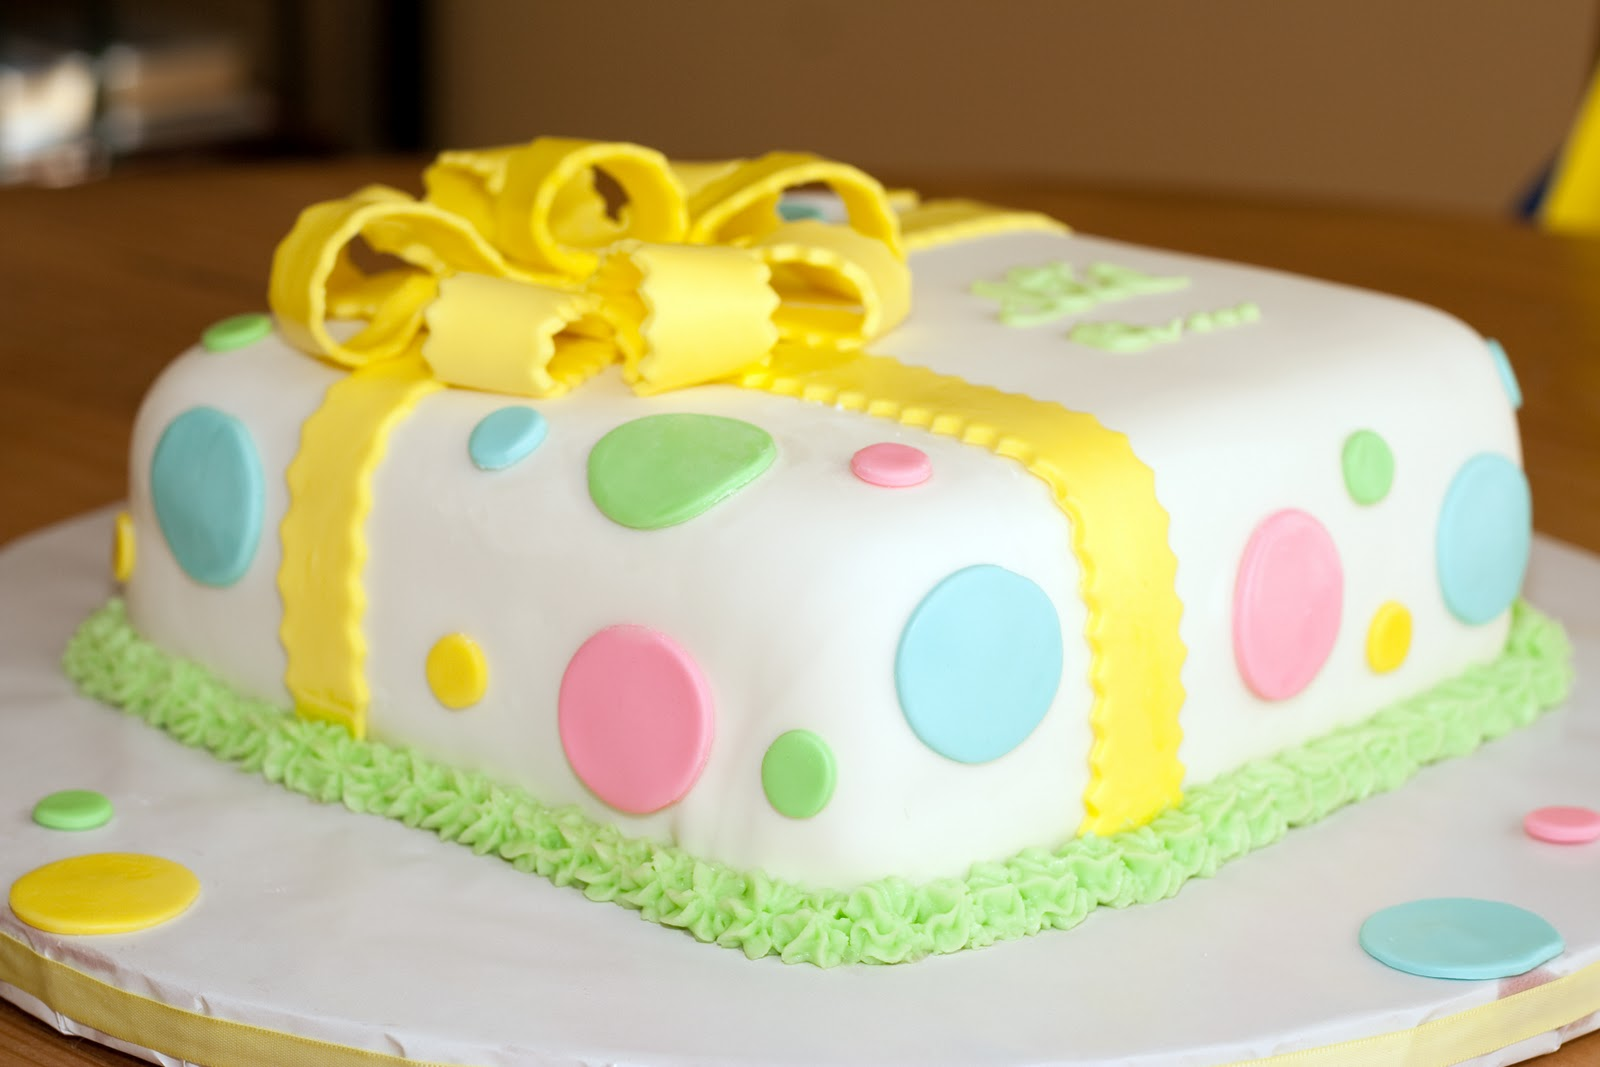 Cakes by Nicola: Gender Reveal Cake